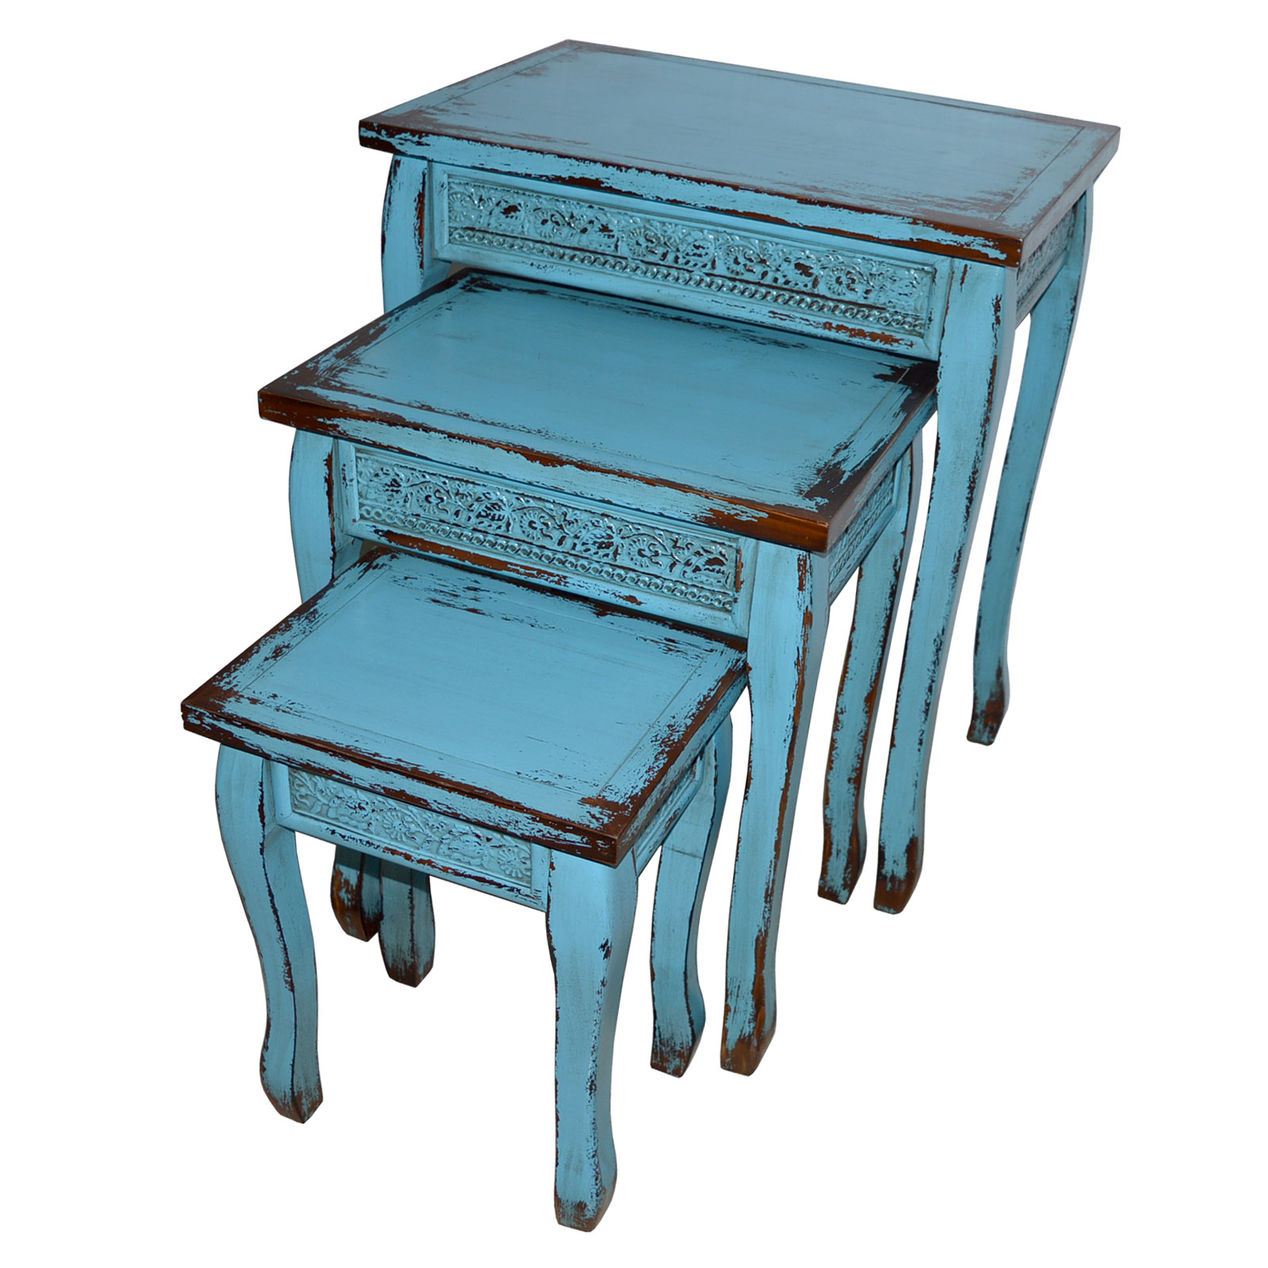 turquoise blue wooden distressed side accent table small home pier one dining and chairs west elm floating shelves gold accessories round console with sliding barn doors modern